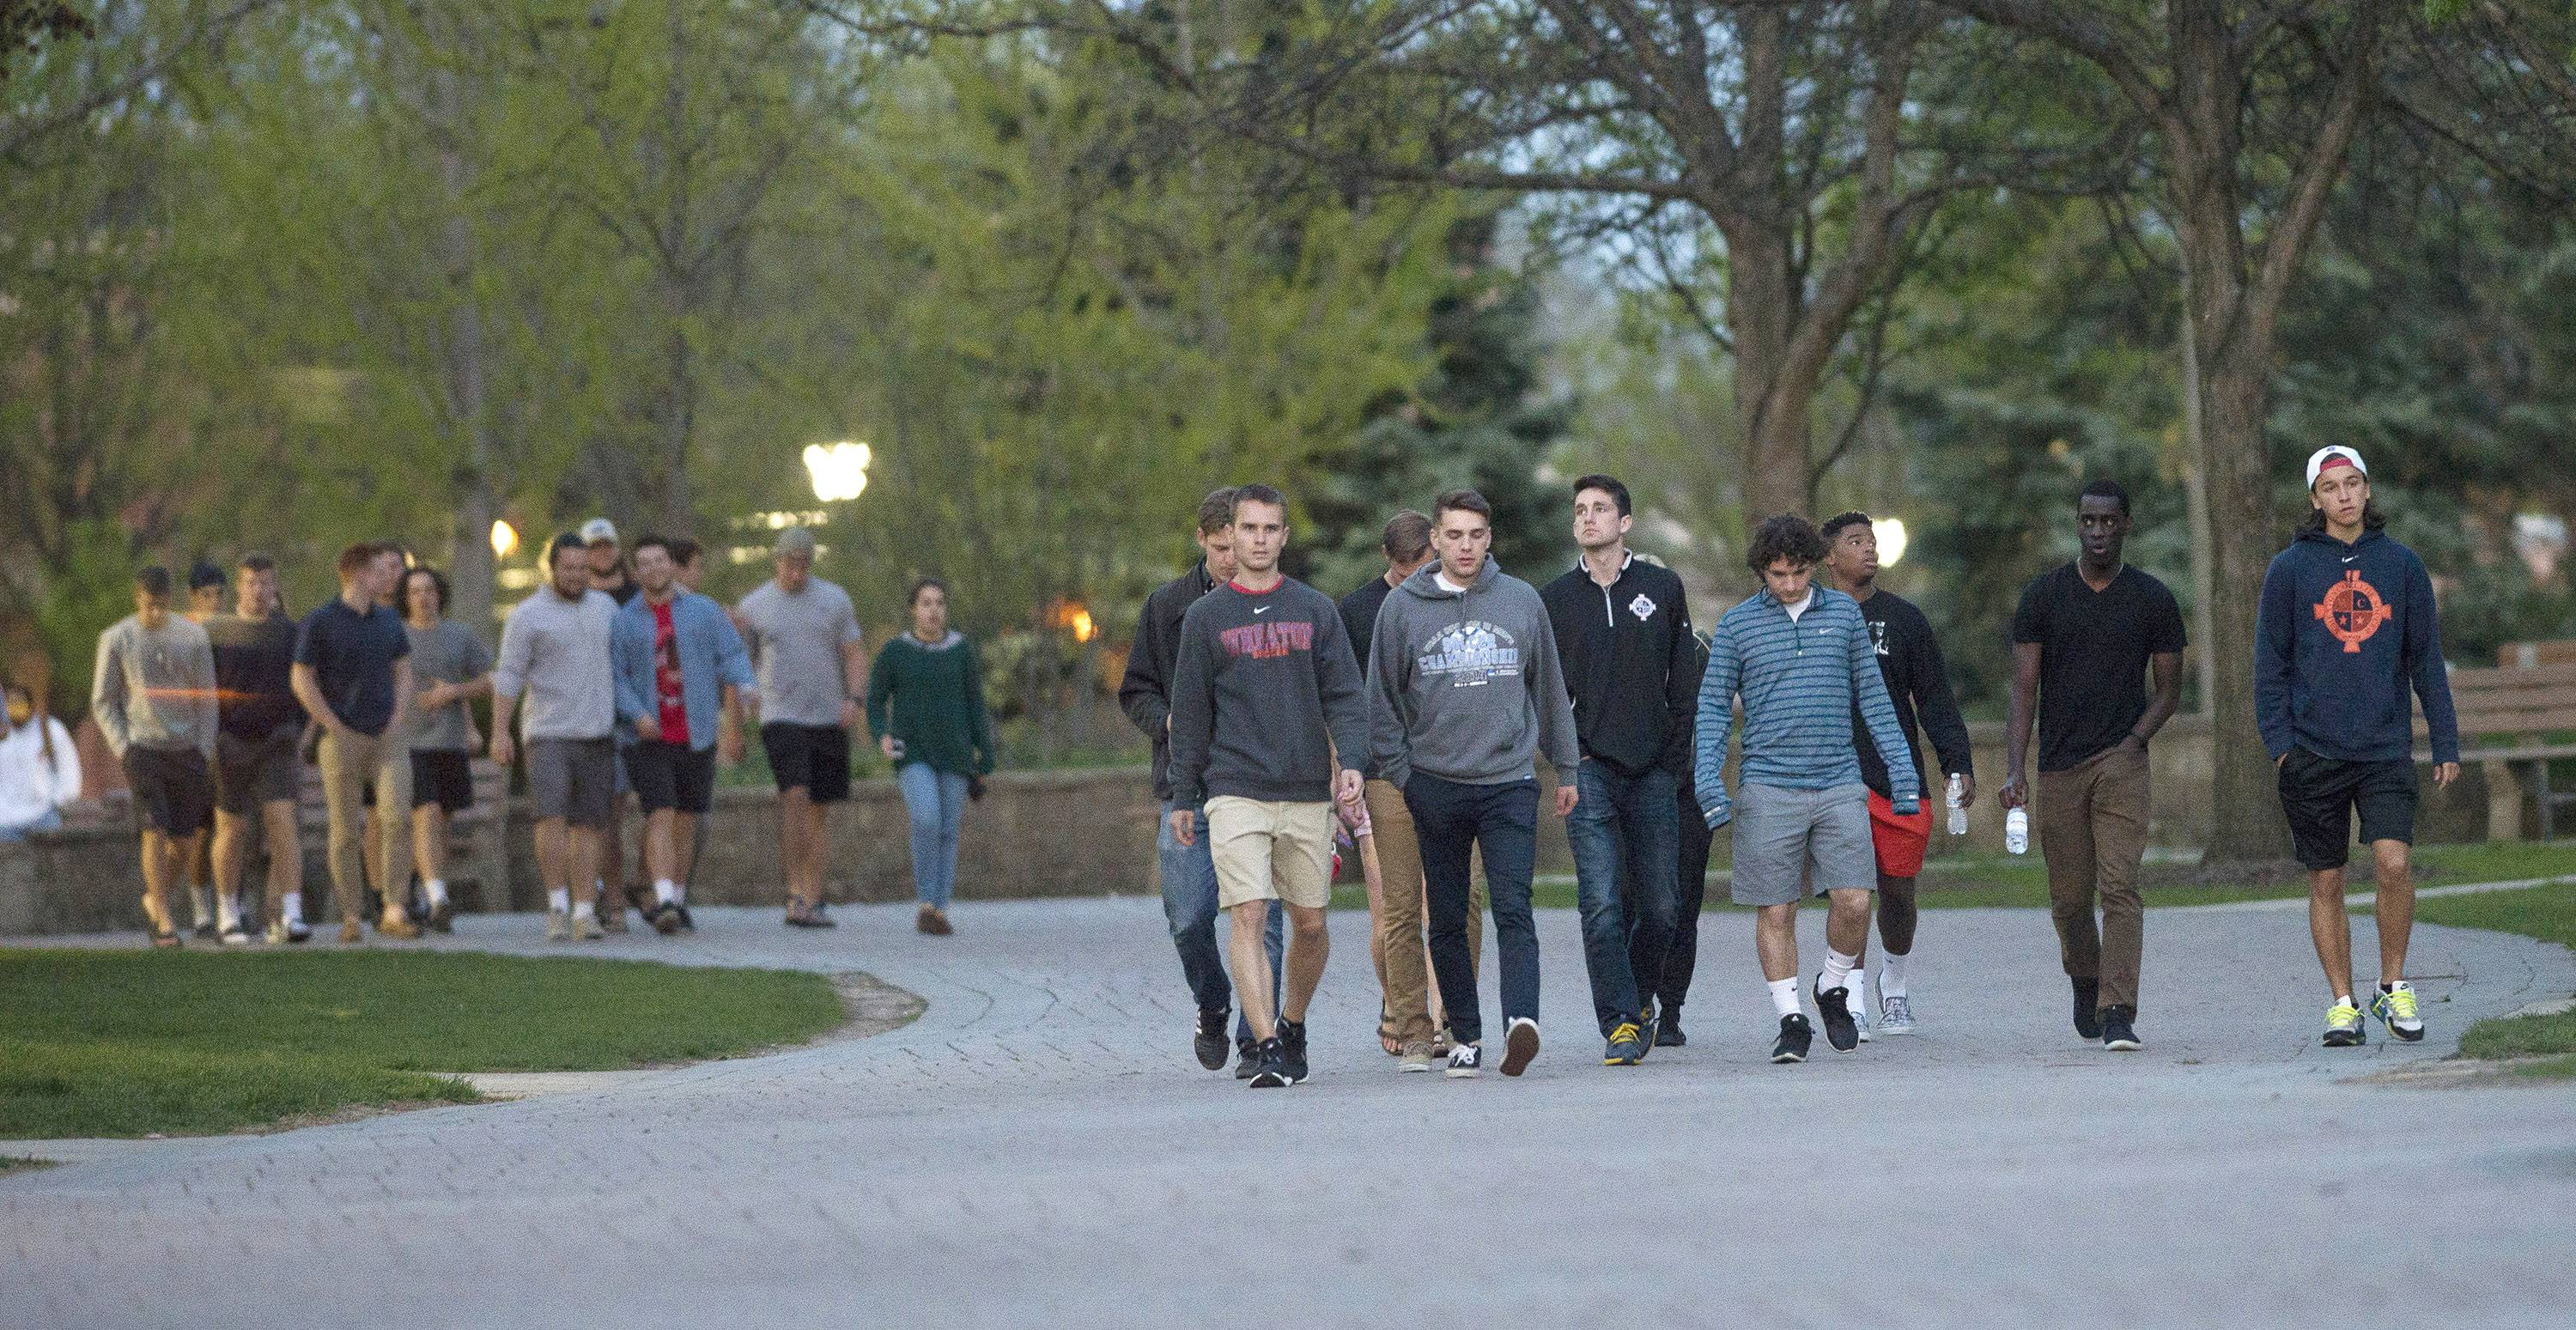 Groups of students walk on the Wheaton College campus Sunday for a worship service at Pierce Memorial Chapel in memory of freshman Ethan Roser of Cincinnati. Roser died Saturday after an accident at a track meet.